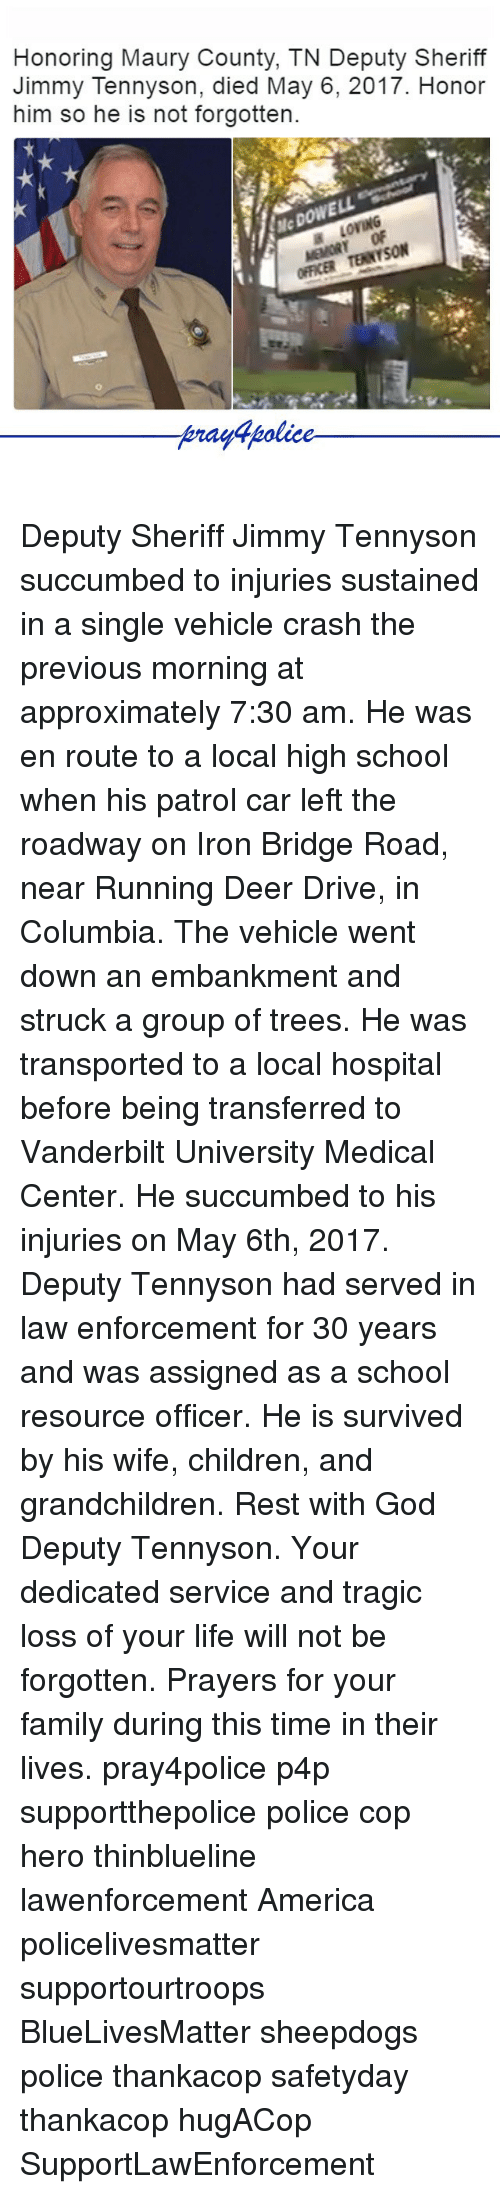 America, Children, and Deer: Honoring Maury County, TN Deputy Sheriff  Jimmy Tennyson, died May 6, 2017. Honor  him so he is not forgotten.  McDOWELL  OFFICER TENTSON  police Deputy Sheriff Jimmy Tennyson succumbed to injuries sustained in a single vehicle crash the previous morning at approximately 7:30 am. He was en route to a local high school when his patrol car left the roadway on Iron Bridge Road, near Running Deer Drive, in Columbia. The vehicle went down an embankment and struck a group of trees. He was transported to a local hospital before being transferred to Vanderbilt University Medical Center. He succumbed to his injuries on May 6th, 2017. Deputy Tennyson had served in law enforcement for 30 years and was assigned as a school resource officer. He is survived by his wife, children, and grandchildren. Rest with God Deputy Tennyson. Your dedicated service and tragic loss of your life will not be forgotten. Prayers for your family during this time in their lives. pray4police p4p supportthepolice police cop hero thinblueline lawenforcement America policelivesmatter supportourtroops BlueLivesMatter sheepdogs police thankacop safetyday thankacop hugACop SupportLawEnforcement